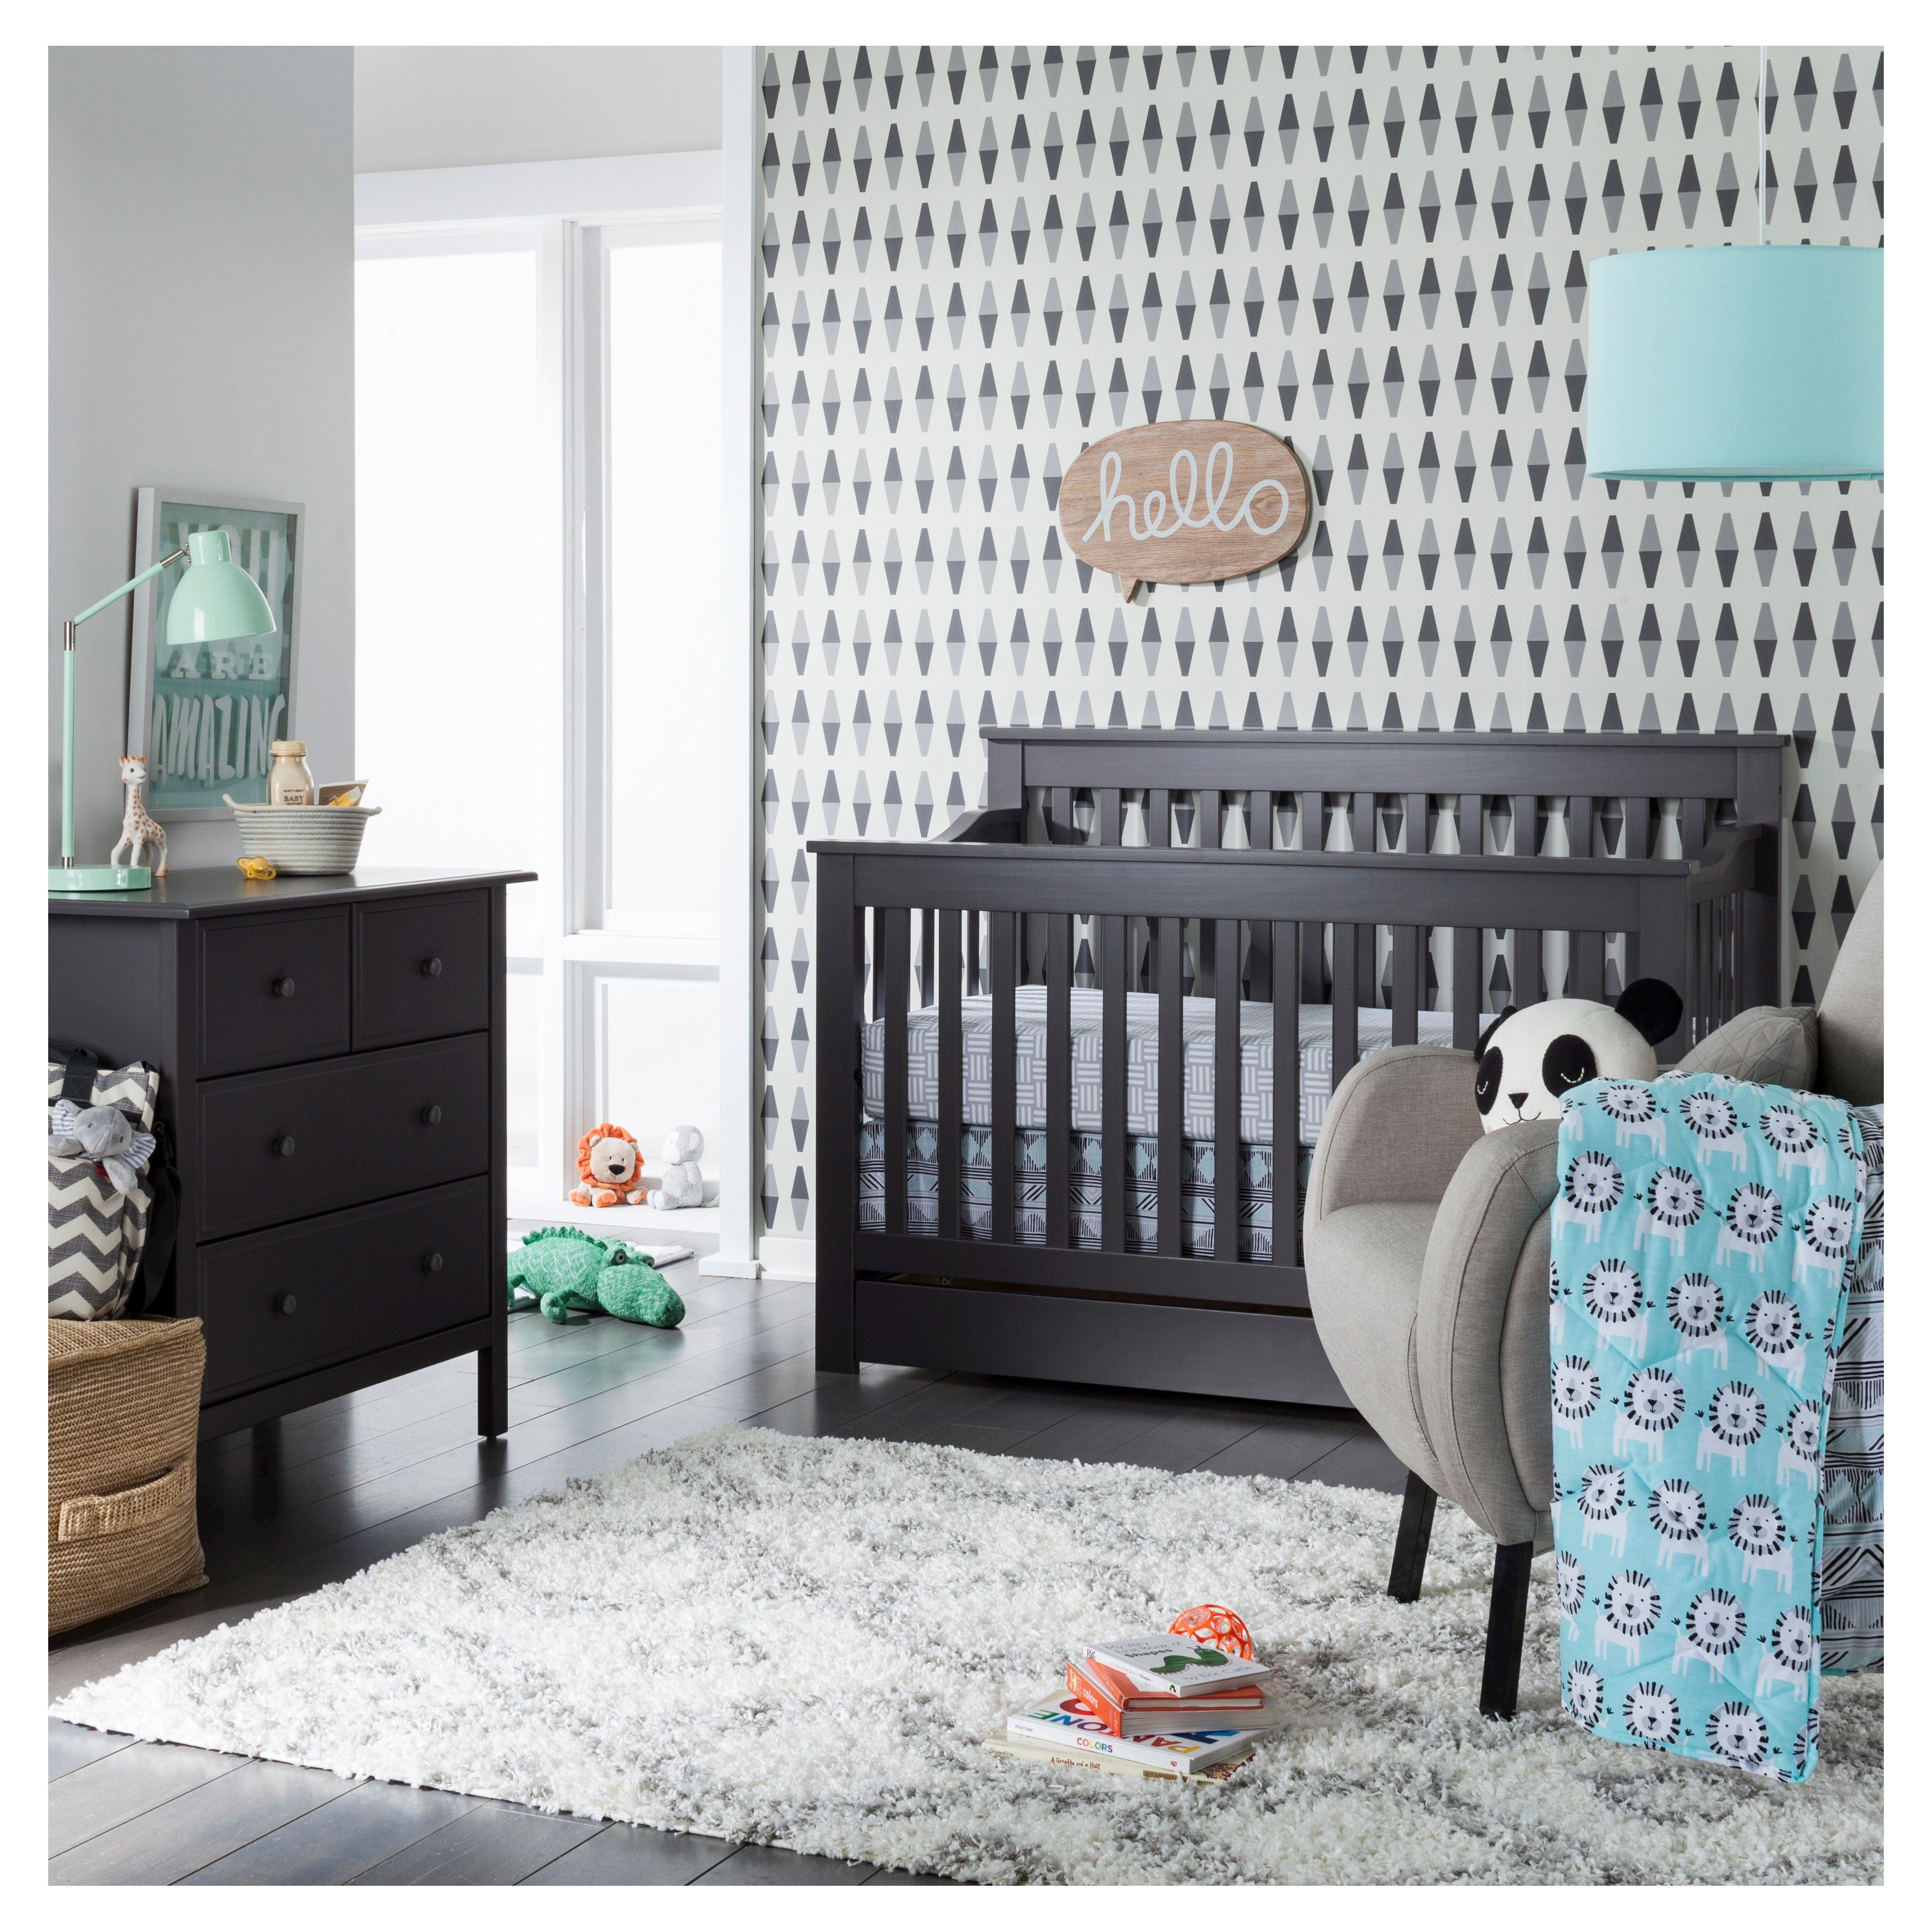 Your little love will roar with delight for the Sabrina Soto Leo Collection. Playful lions in grey, black, and white pop against a cheery turquoise background instantly creating a space full of life and bright energy! The reversible comforter features a grey, black, and white Aztec-inspired print with hints of turquoise. Made from 100% cotton, this soft and comfy 3-piece crib set includes a quilted comforter, fitted crib sheet, and crib skirt. Complete your look with baby blankets, changing…